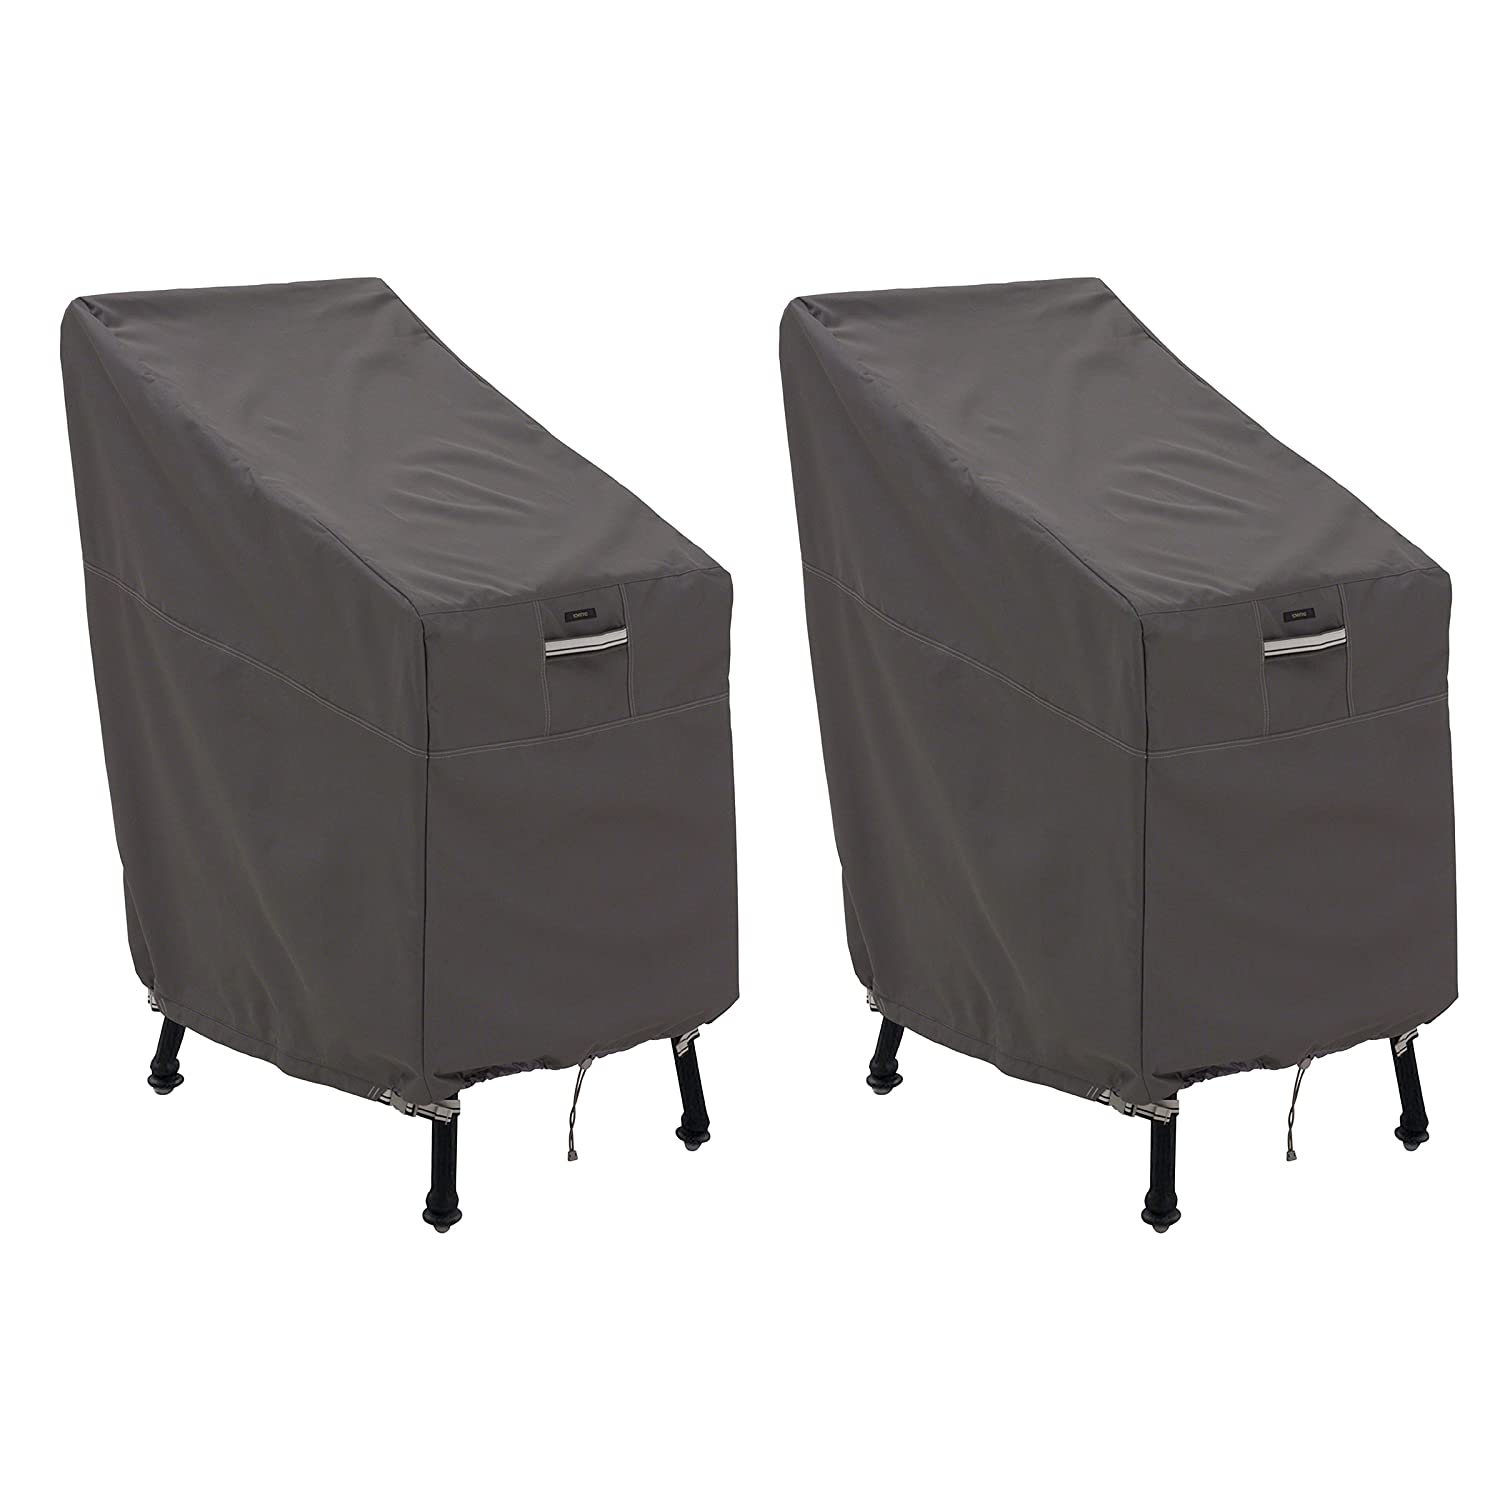 Classic Accessories Ravenna Patio Bar Chair Stool Cover, 2-Pack